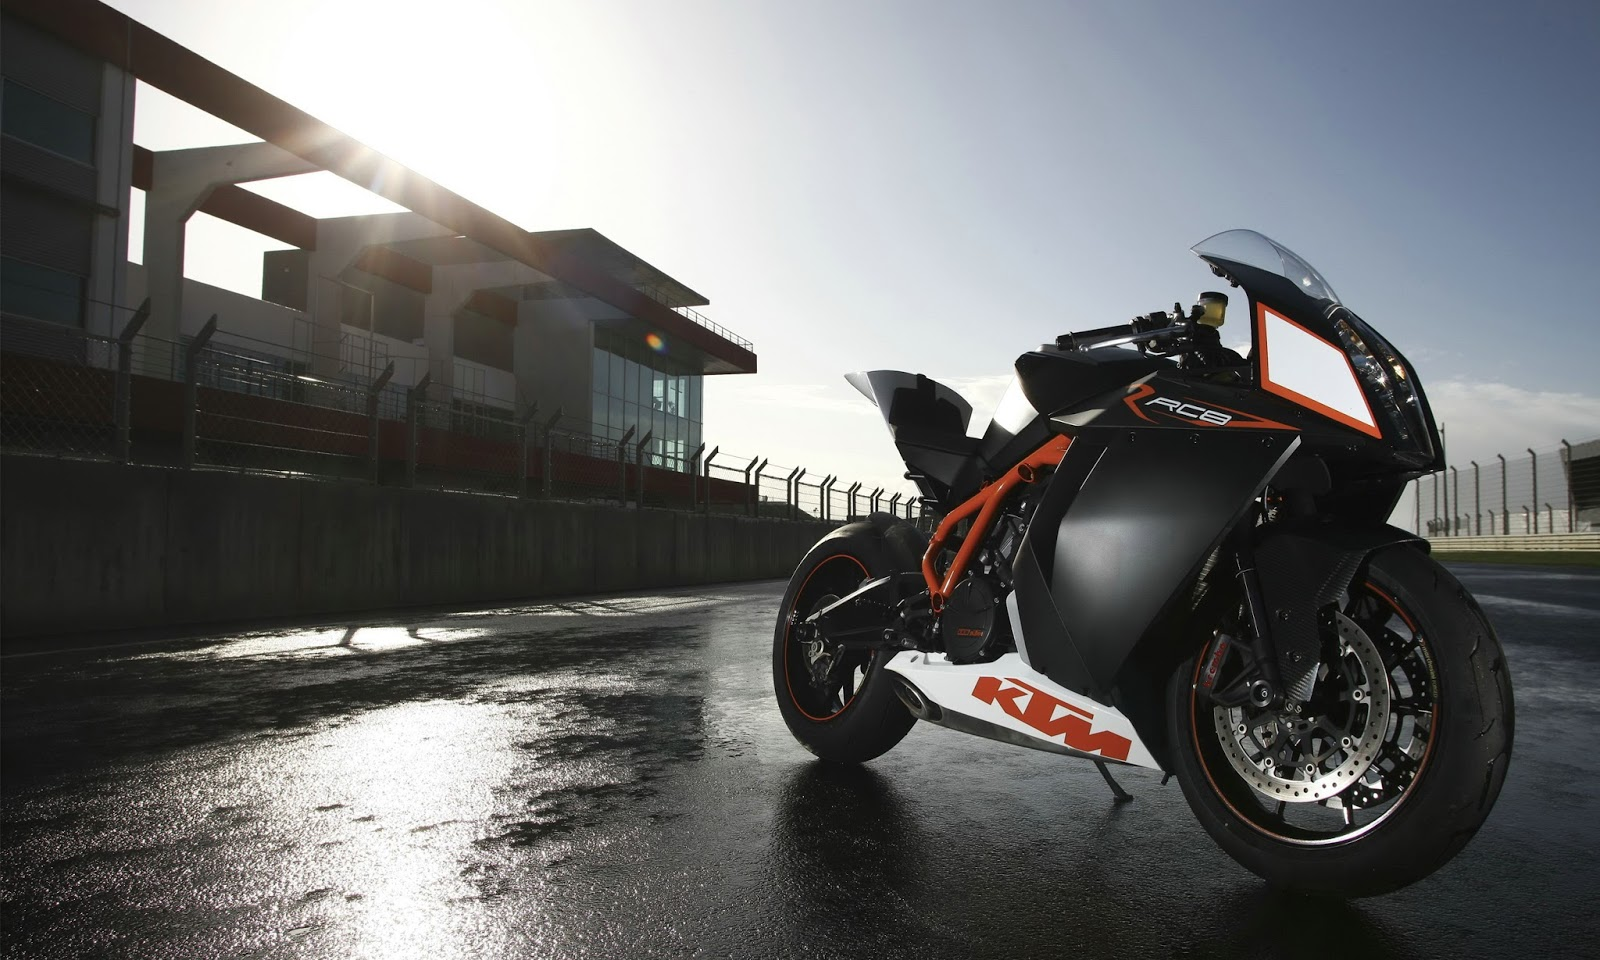 1600x960 - KTM RC8 Wallpapers 26